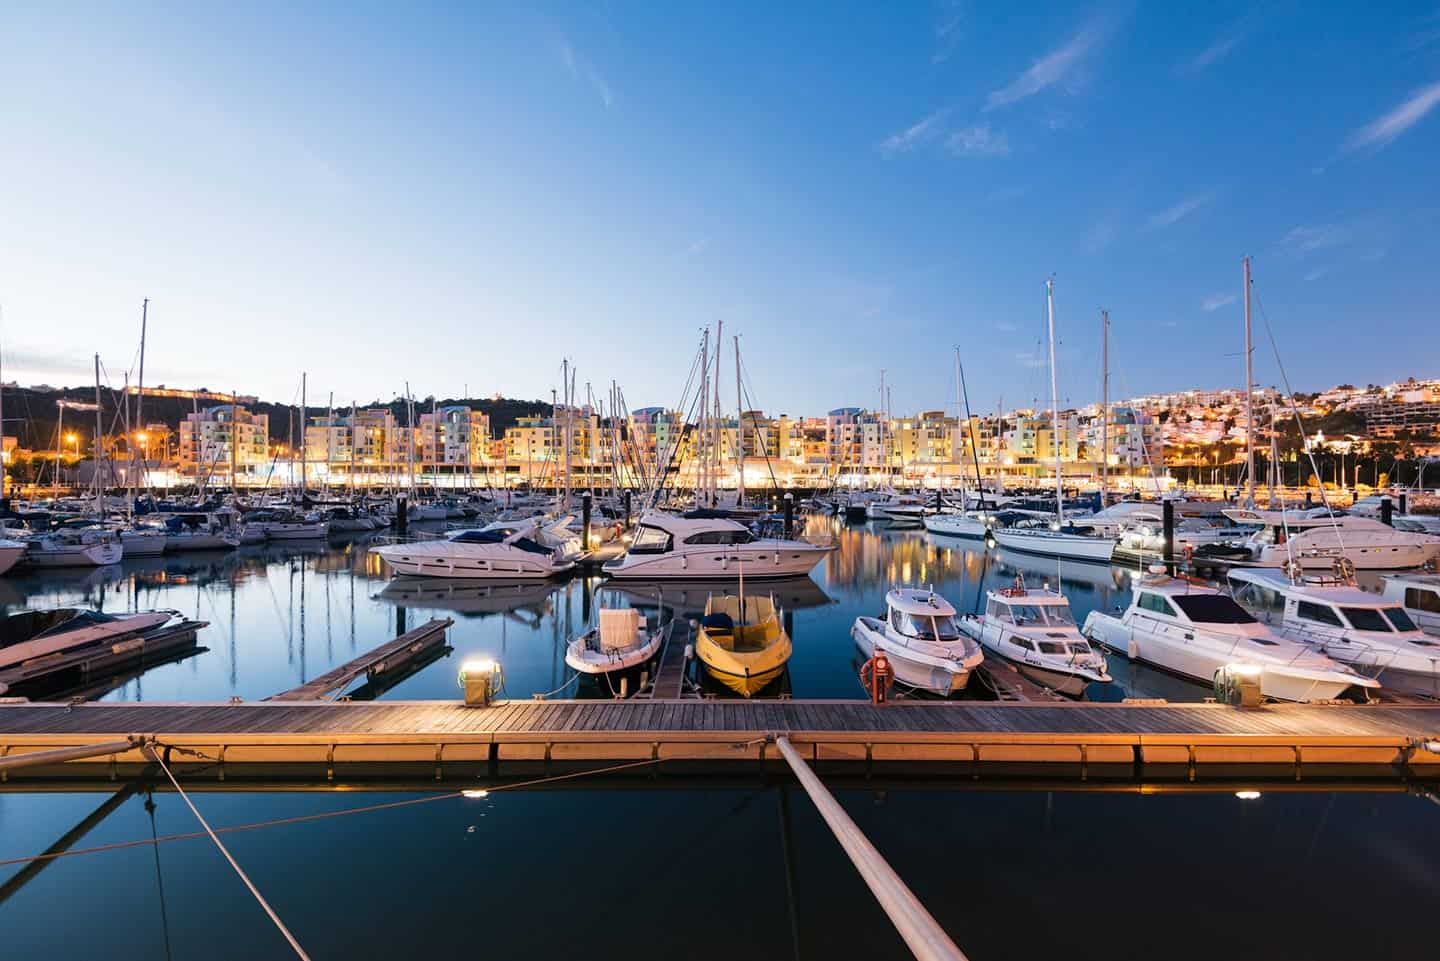 Image of Marina de Albufeira with boats at twilight